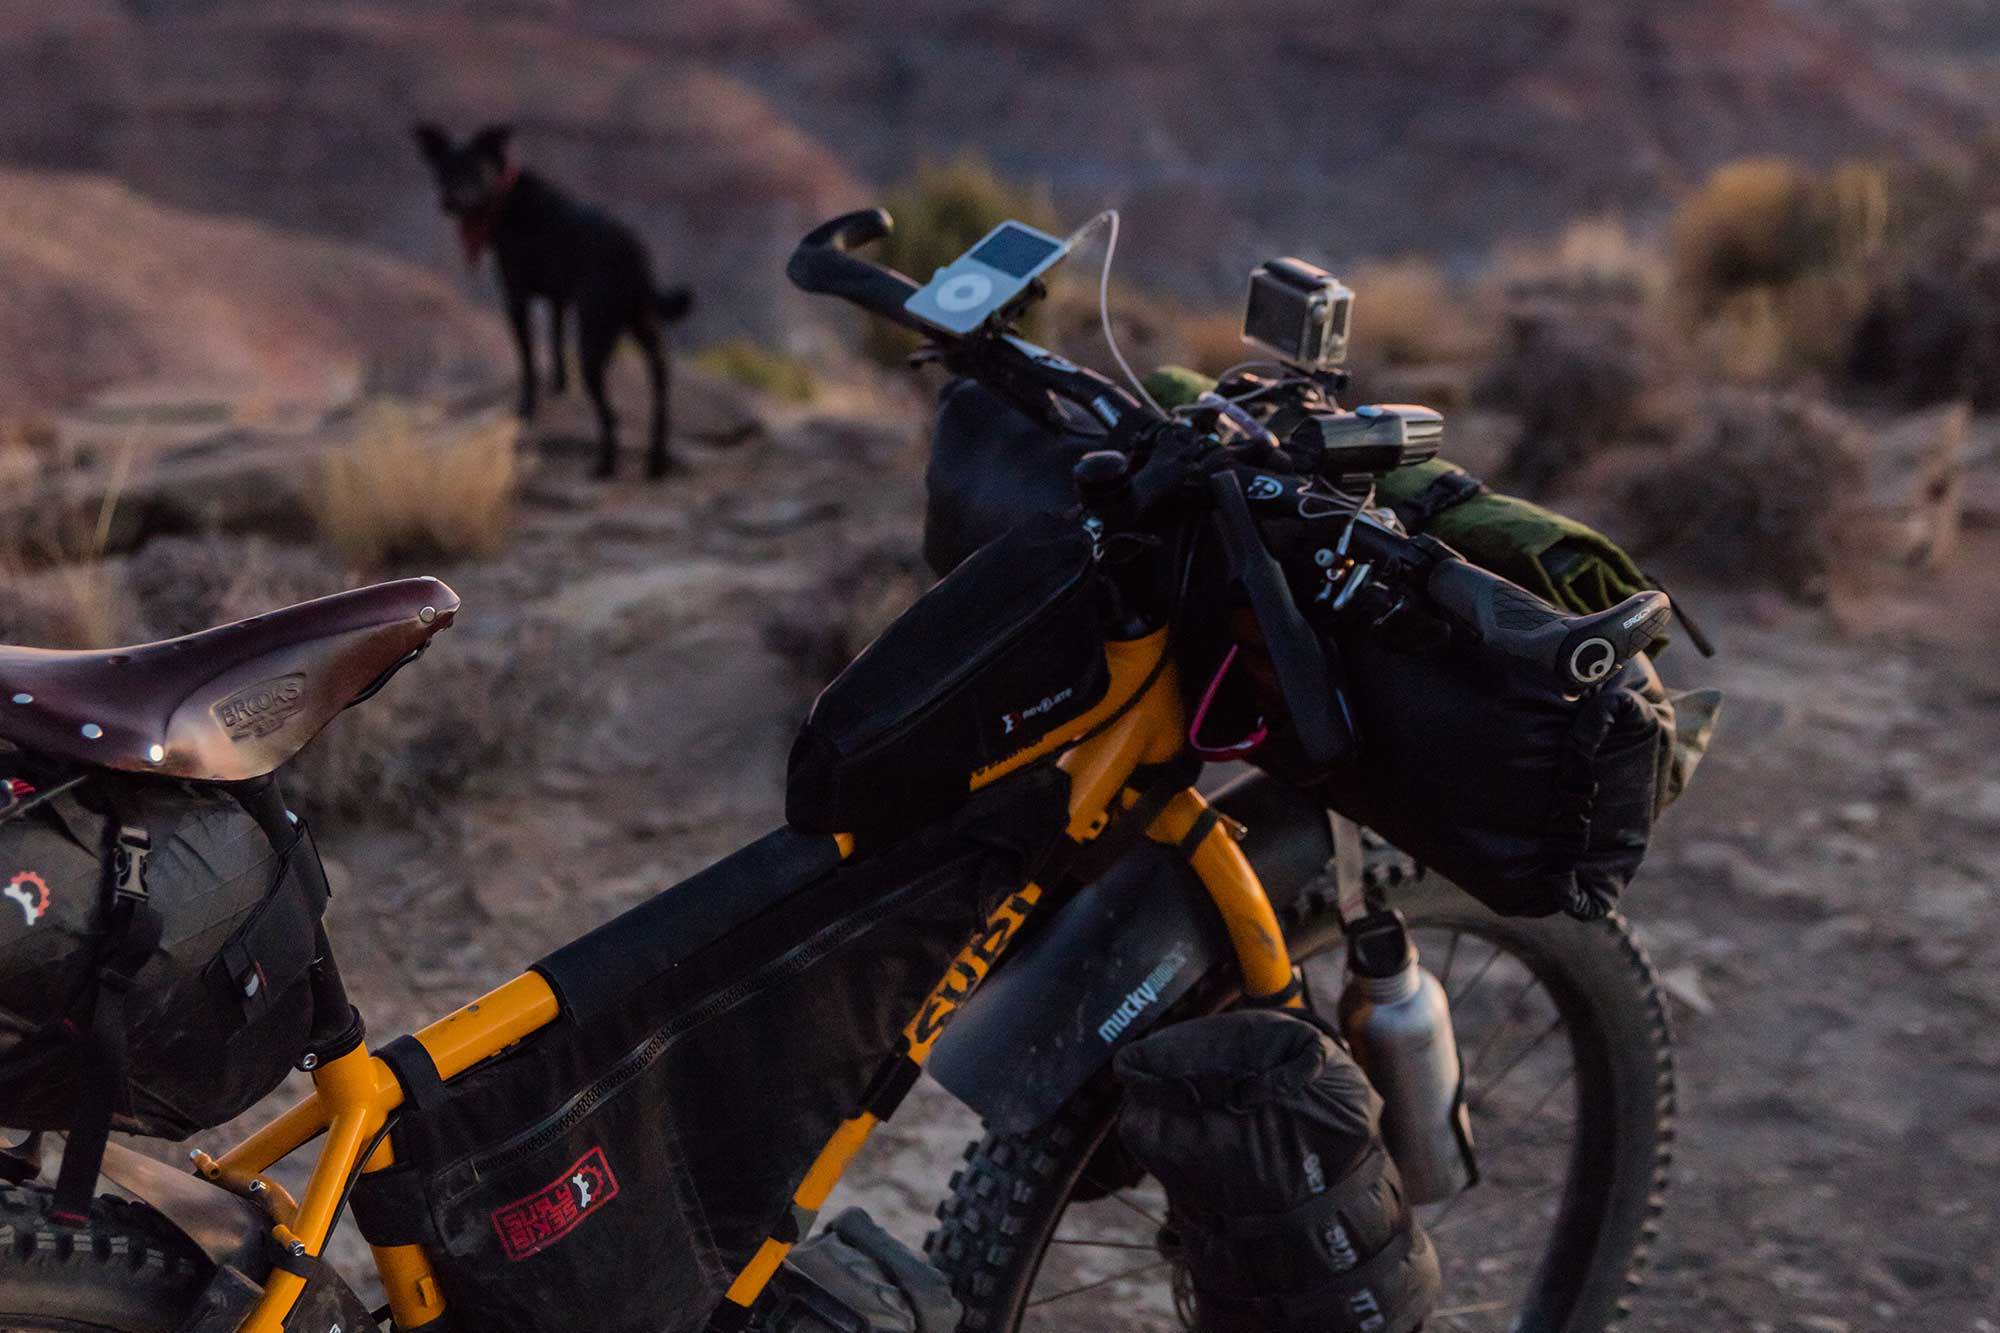 Bikepacking adventure with dog